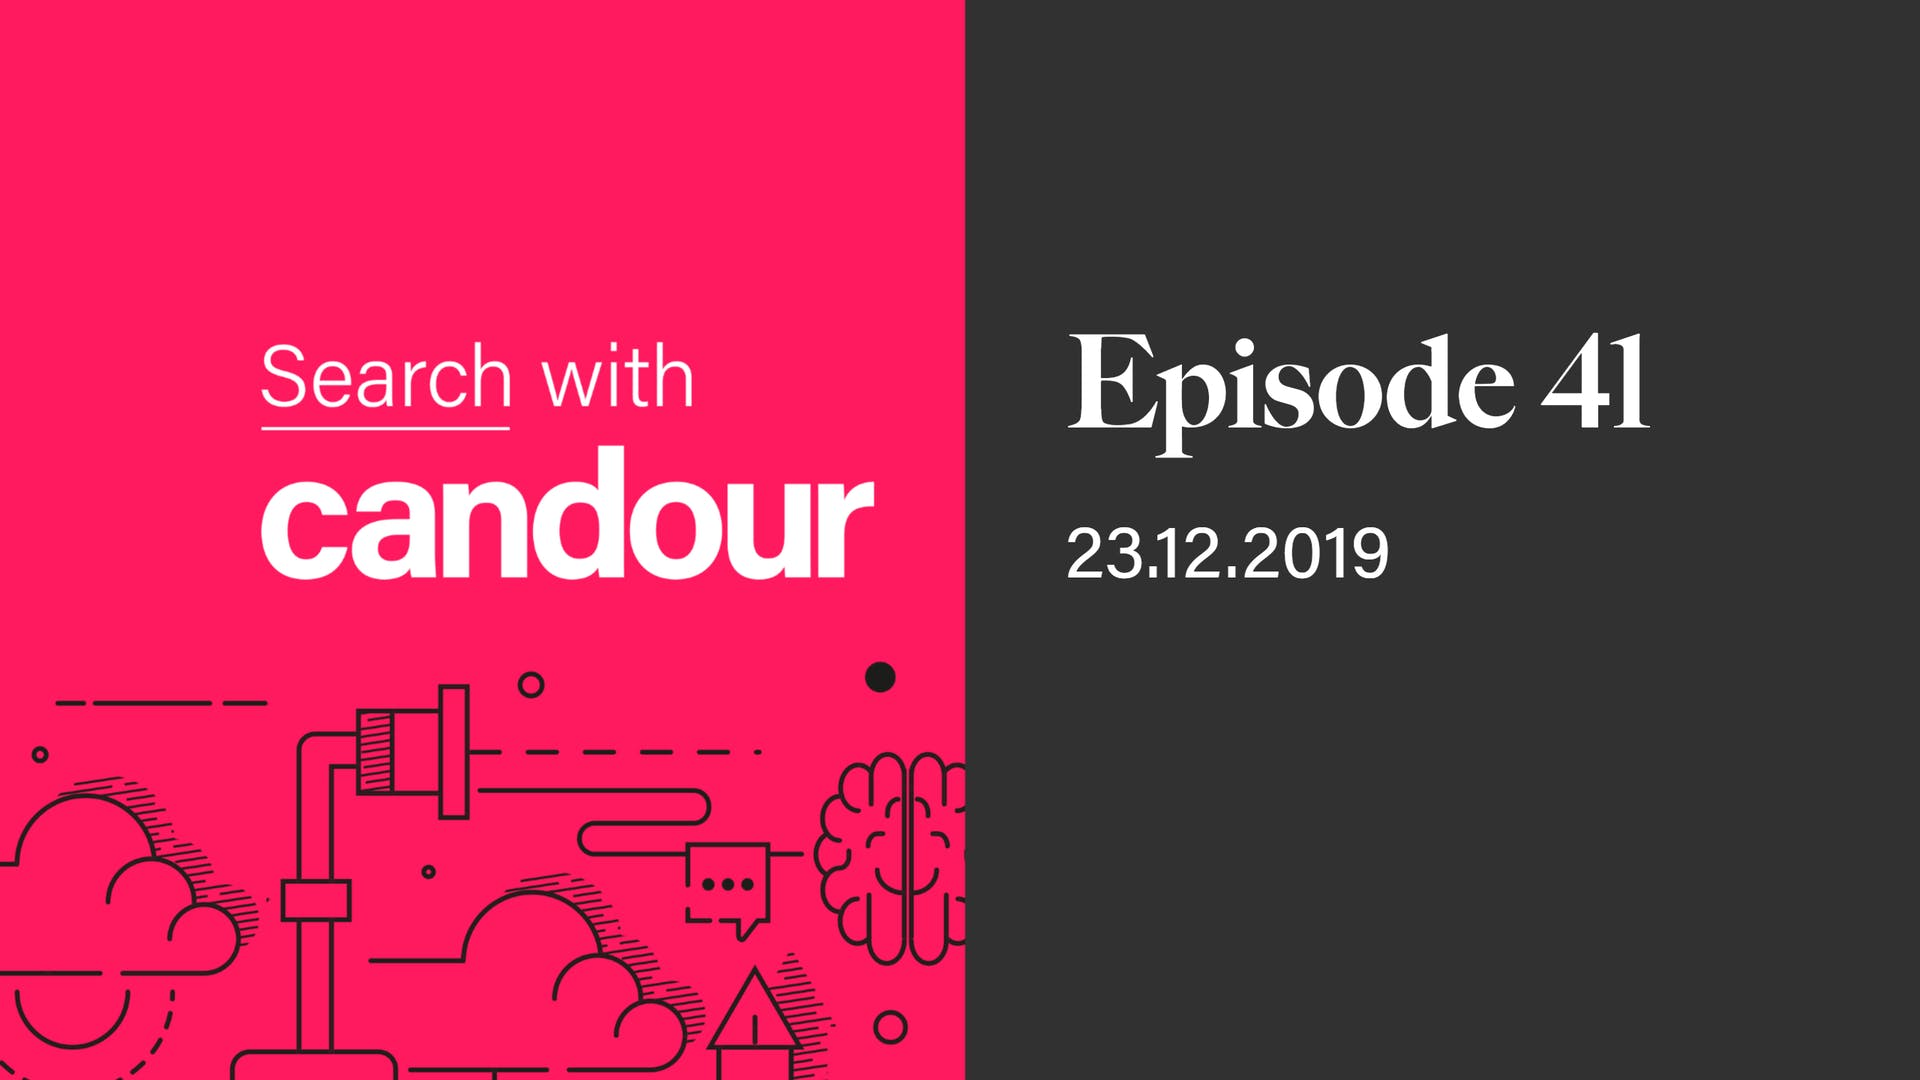 Episode 41 - Search with Candour